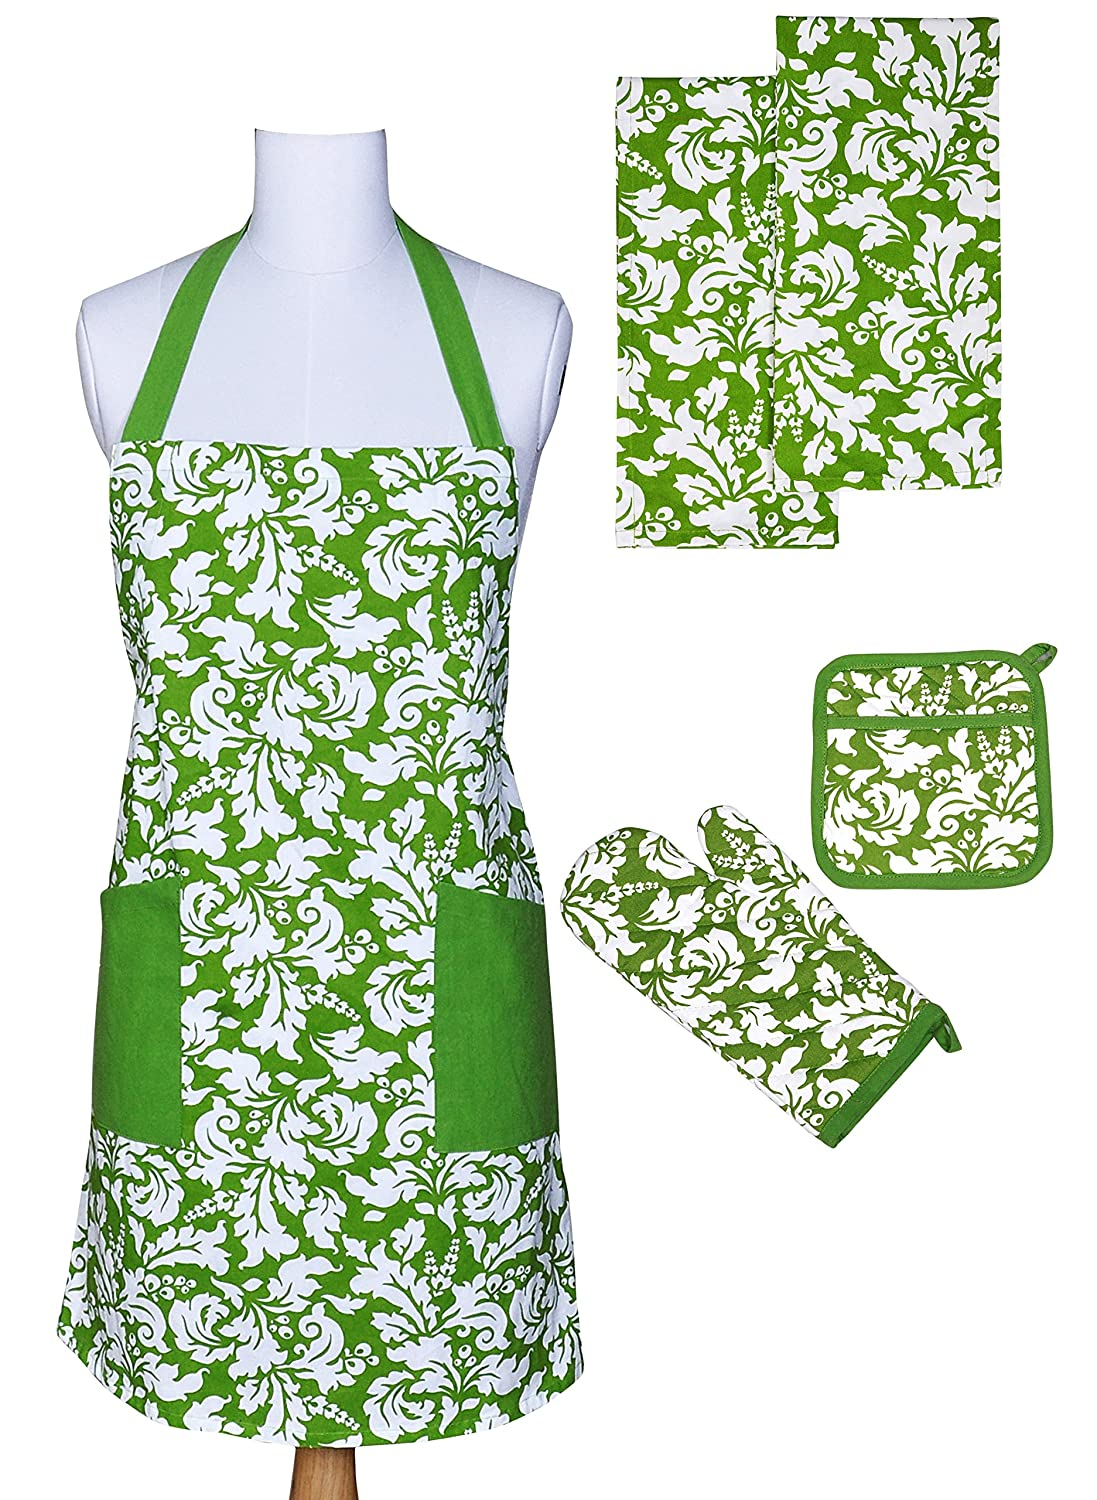 Yourtablecloth Kitchen Gift Set-1 Kitchen Apron, An Oven Mitt & A Pot Holder-2 Kitchen Dish Towels or Tea Towels-Ideal Cooking Gifts or Gift Ideas for Chefs-Suitable for Men & Women-Apple Green